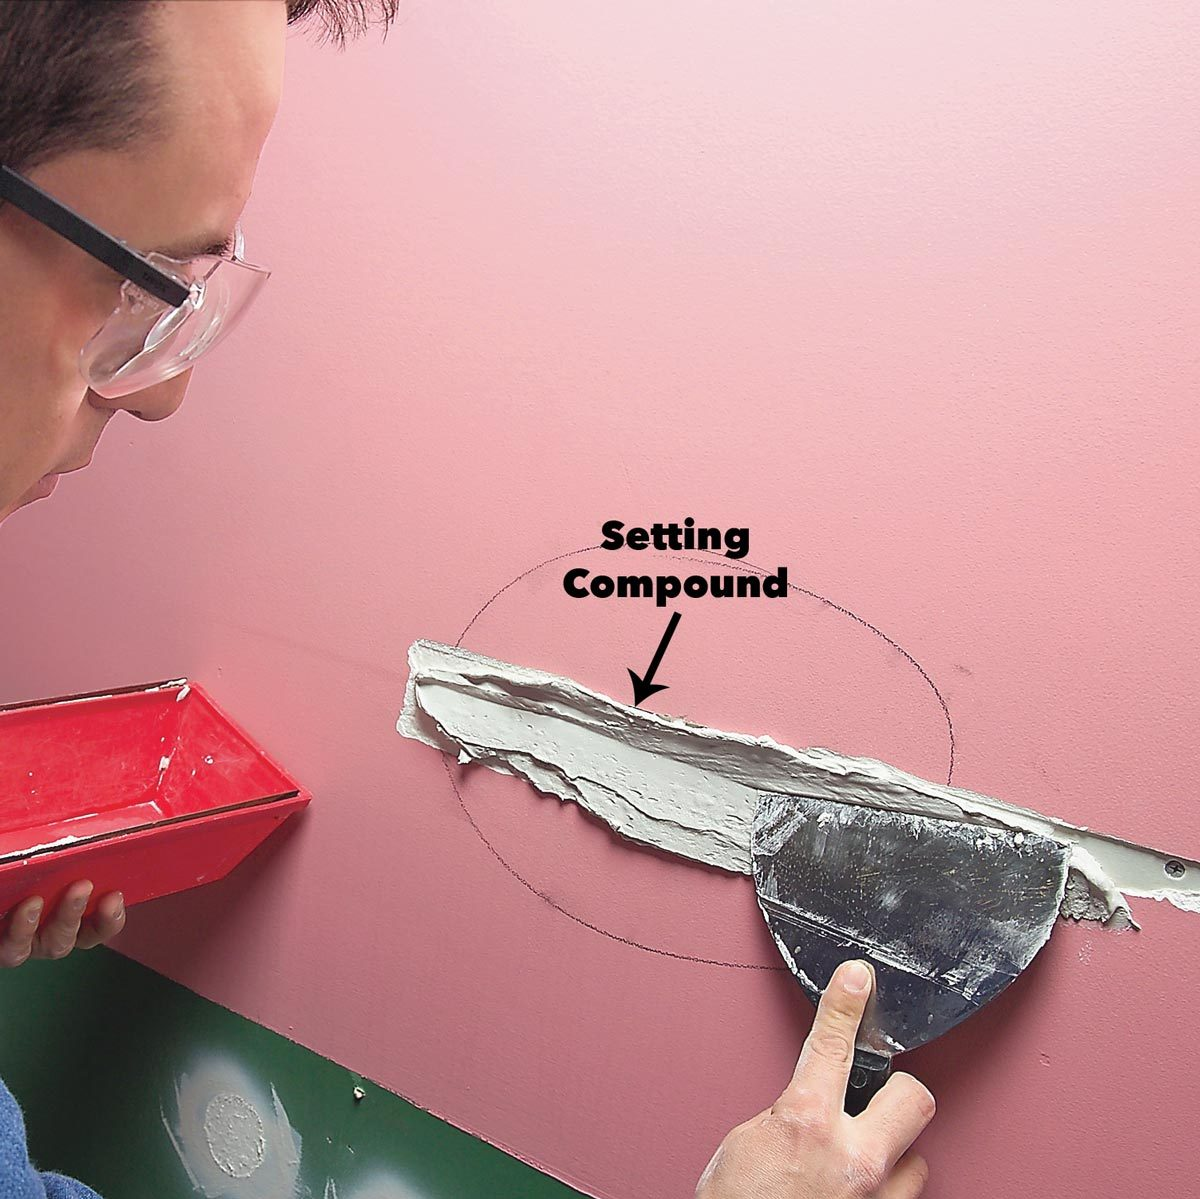 setting compound wall crack